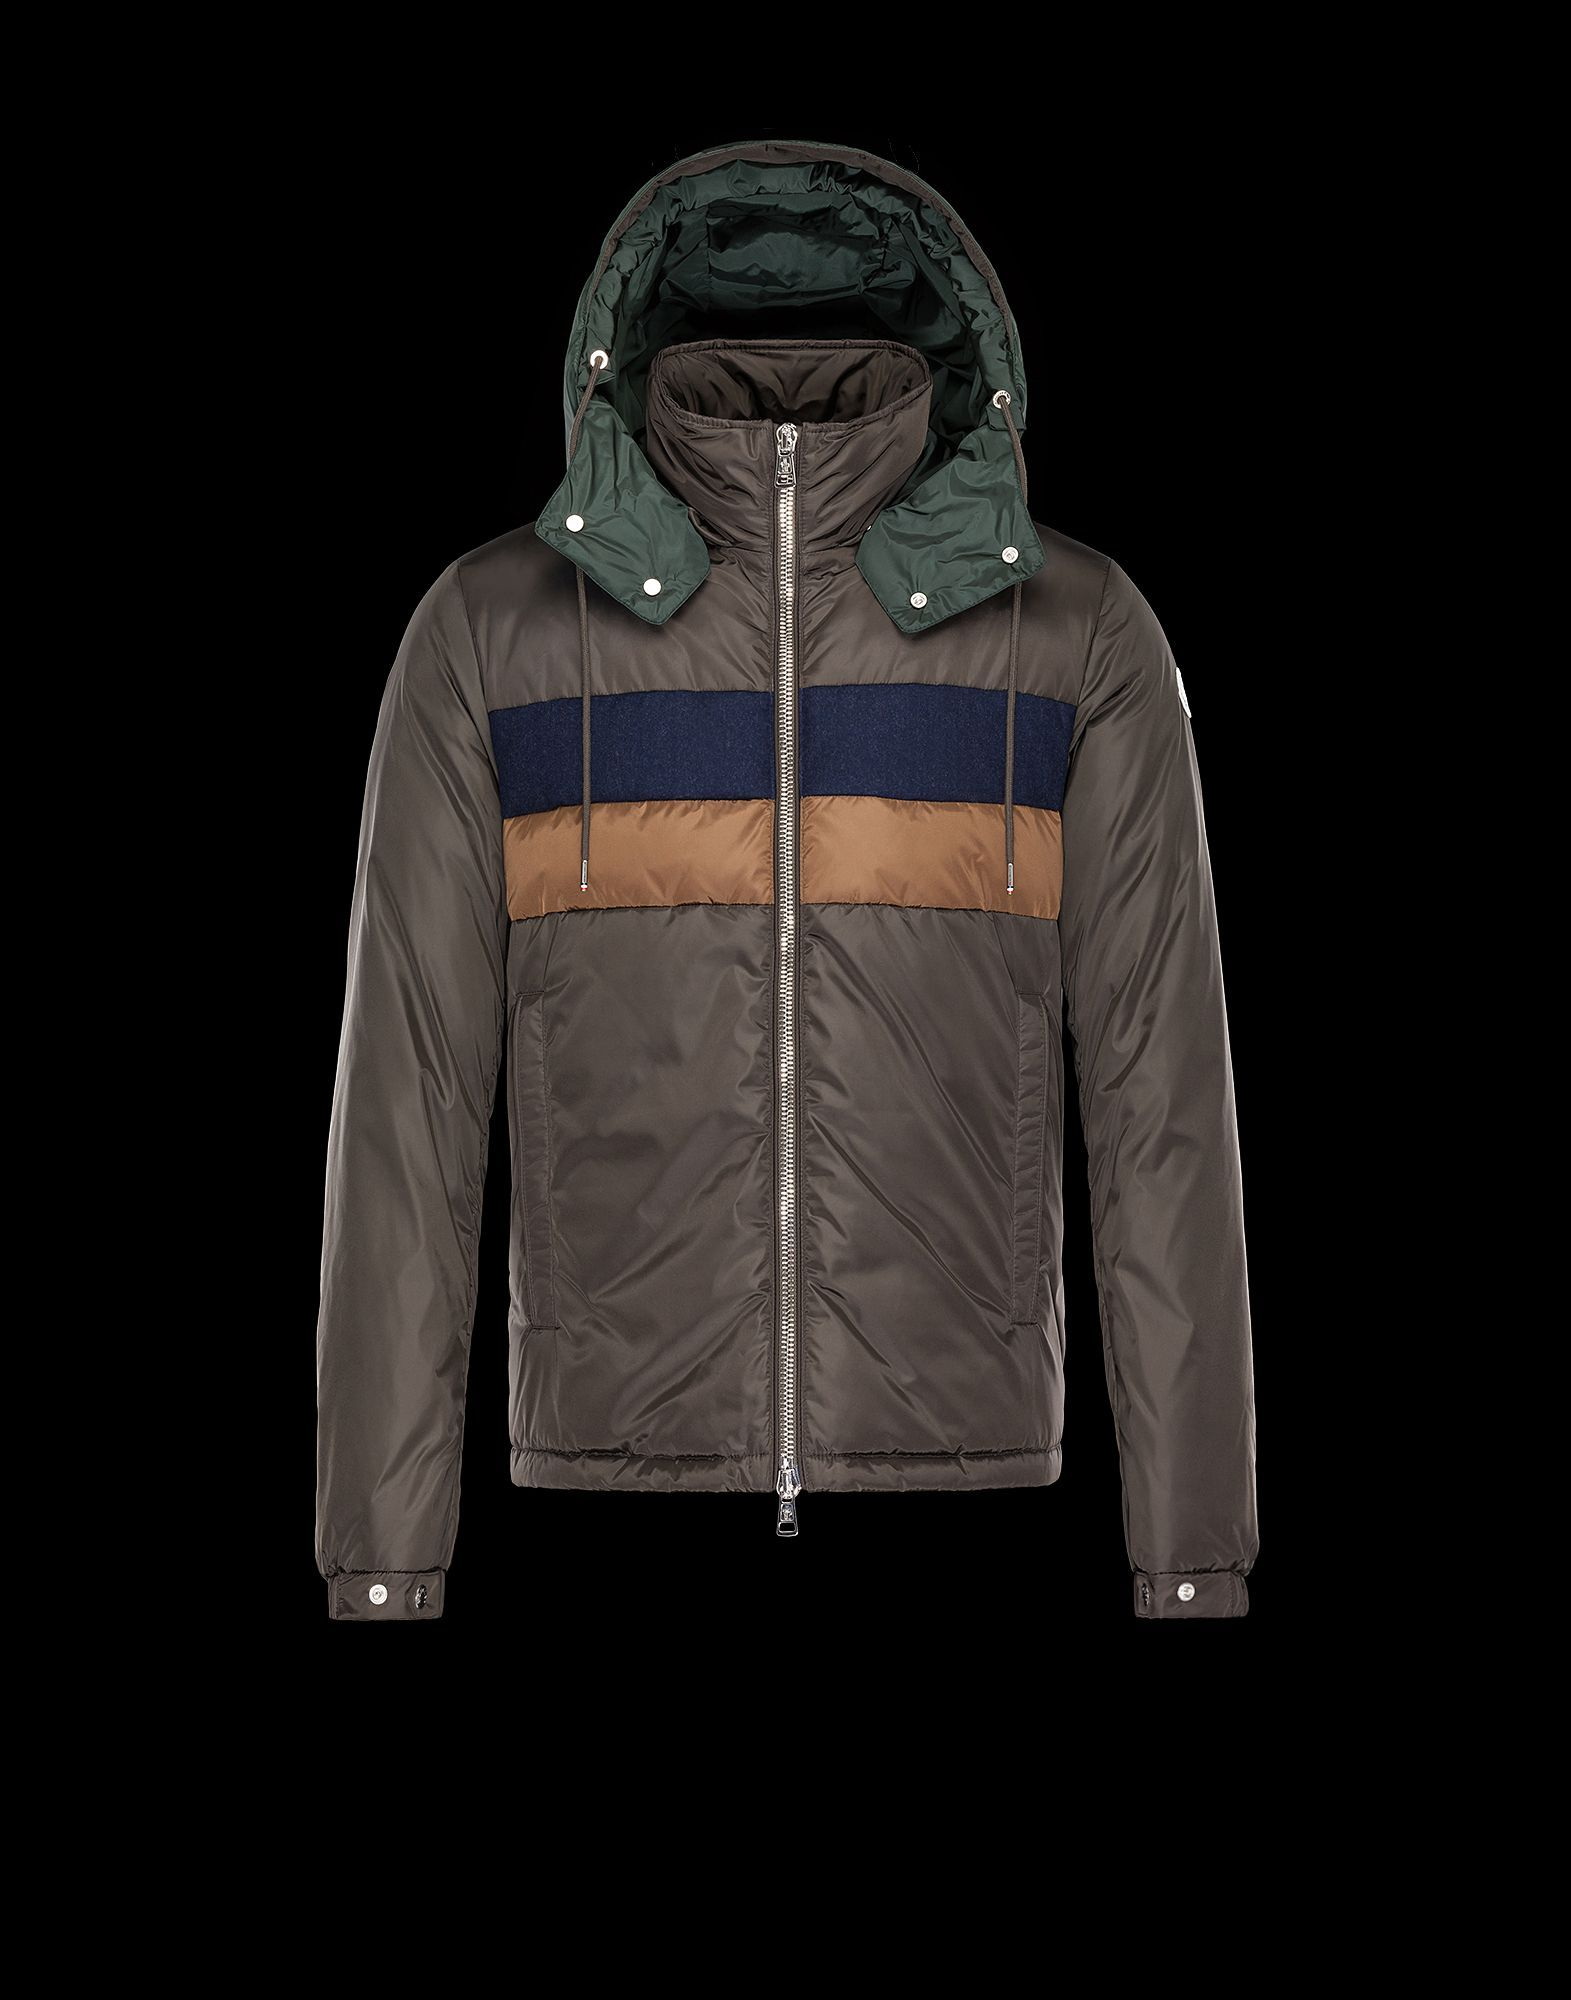 online store 428a0 f84ec Moncler vilbert | jackets in 2019 | Moncler, Fashion, Jackets